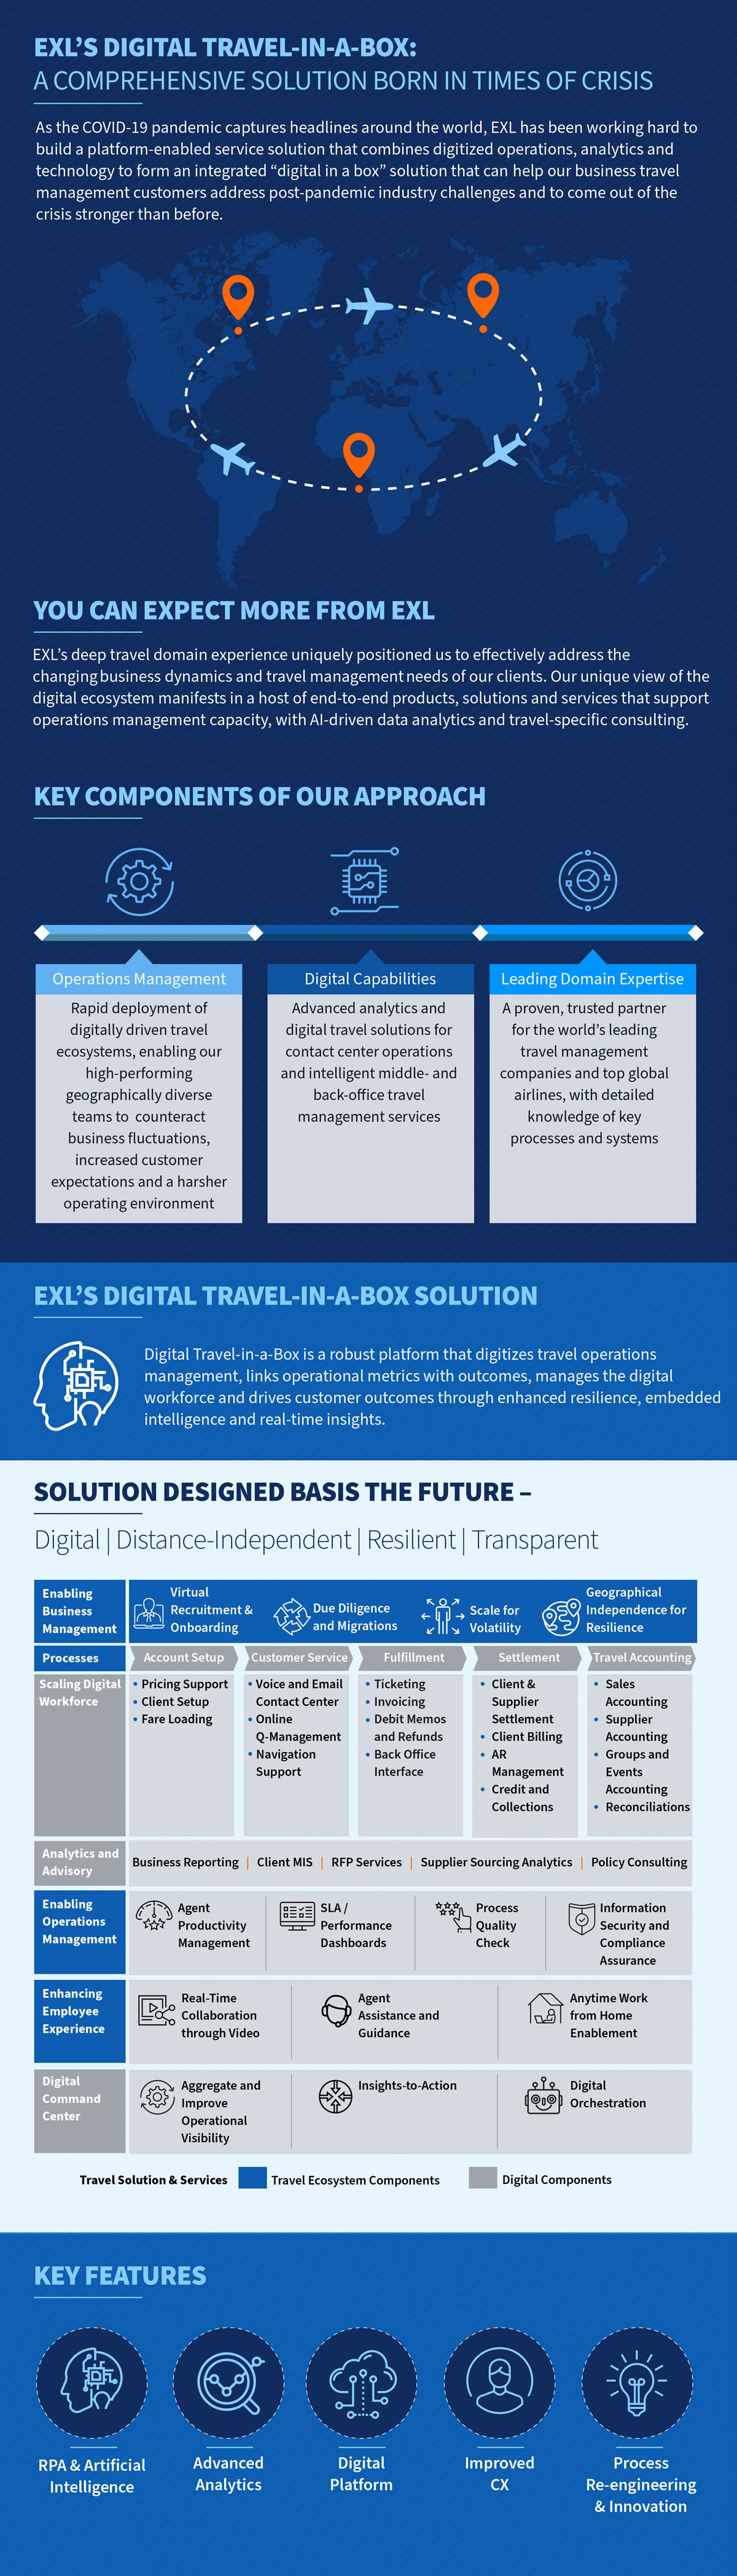 EXL's Digital Travel-in-a-box solution